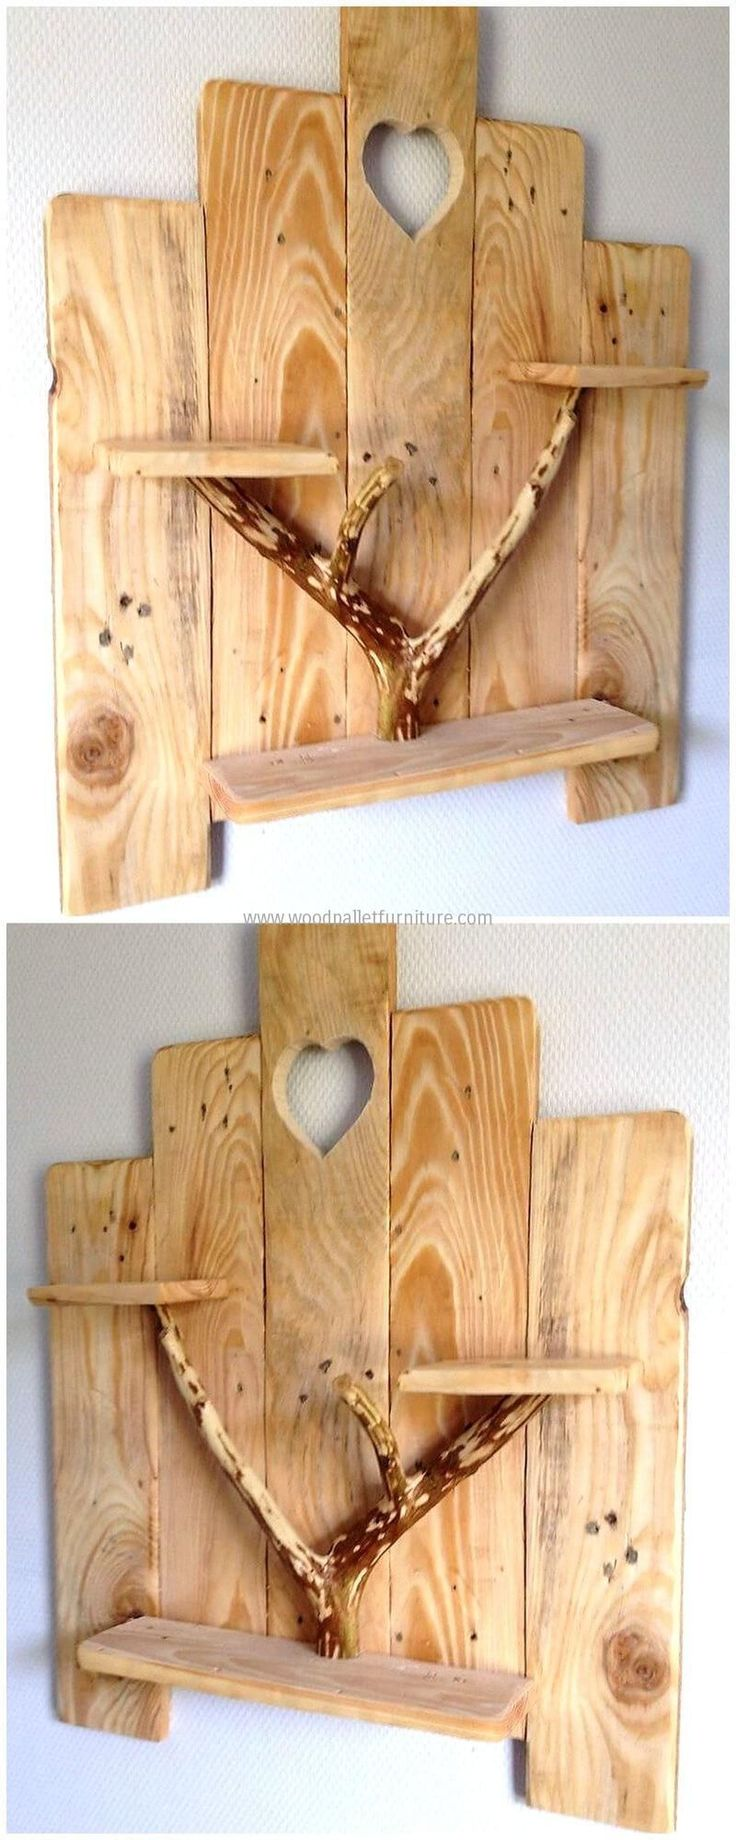 When it comes to wall decoration; salvaging wood pallet is there to solve the need of ornamentation of your place brilliantly. This simple and beautiful craft increases the beauty of your area in mesmerizing way. The use of natural piece of wood in this project is giving artistic look. #simplewoodworking